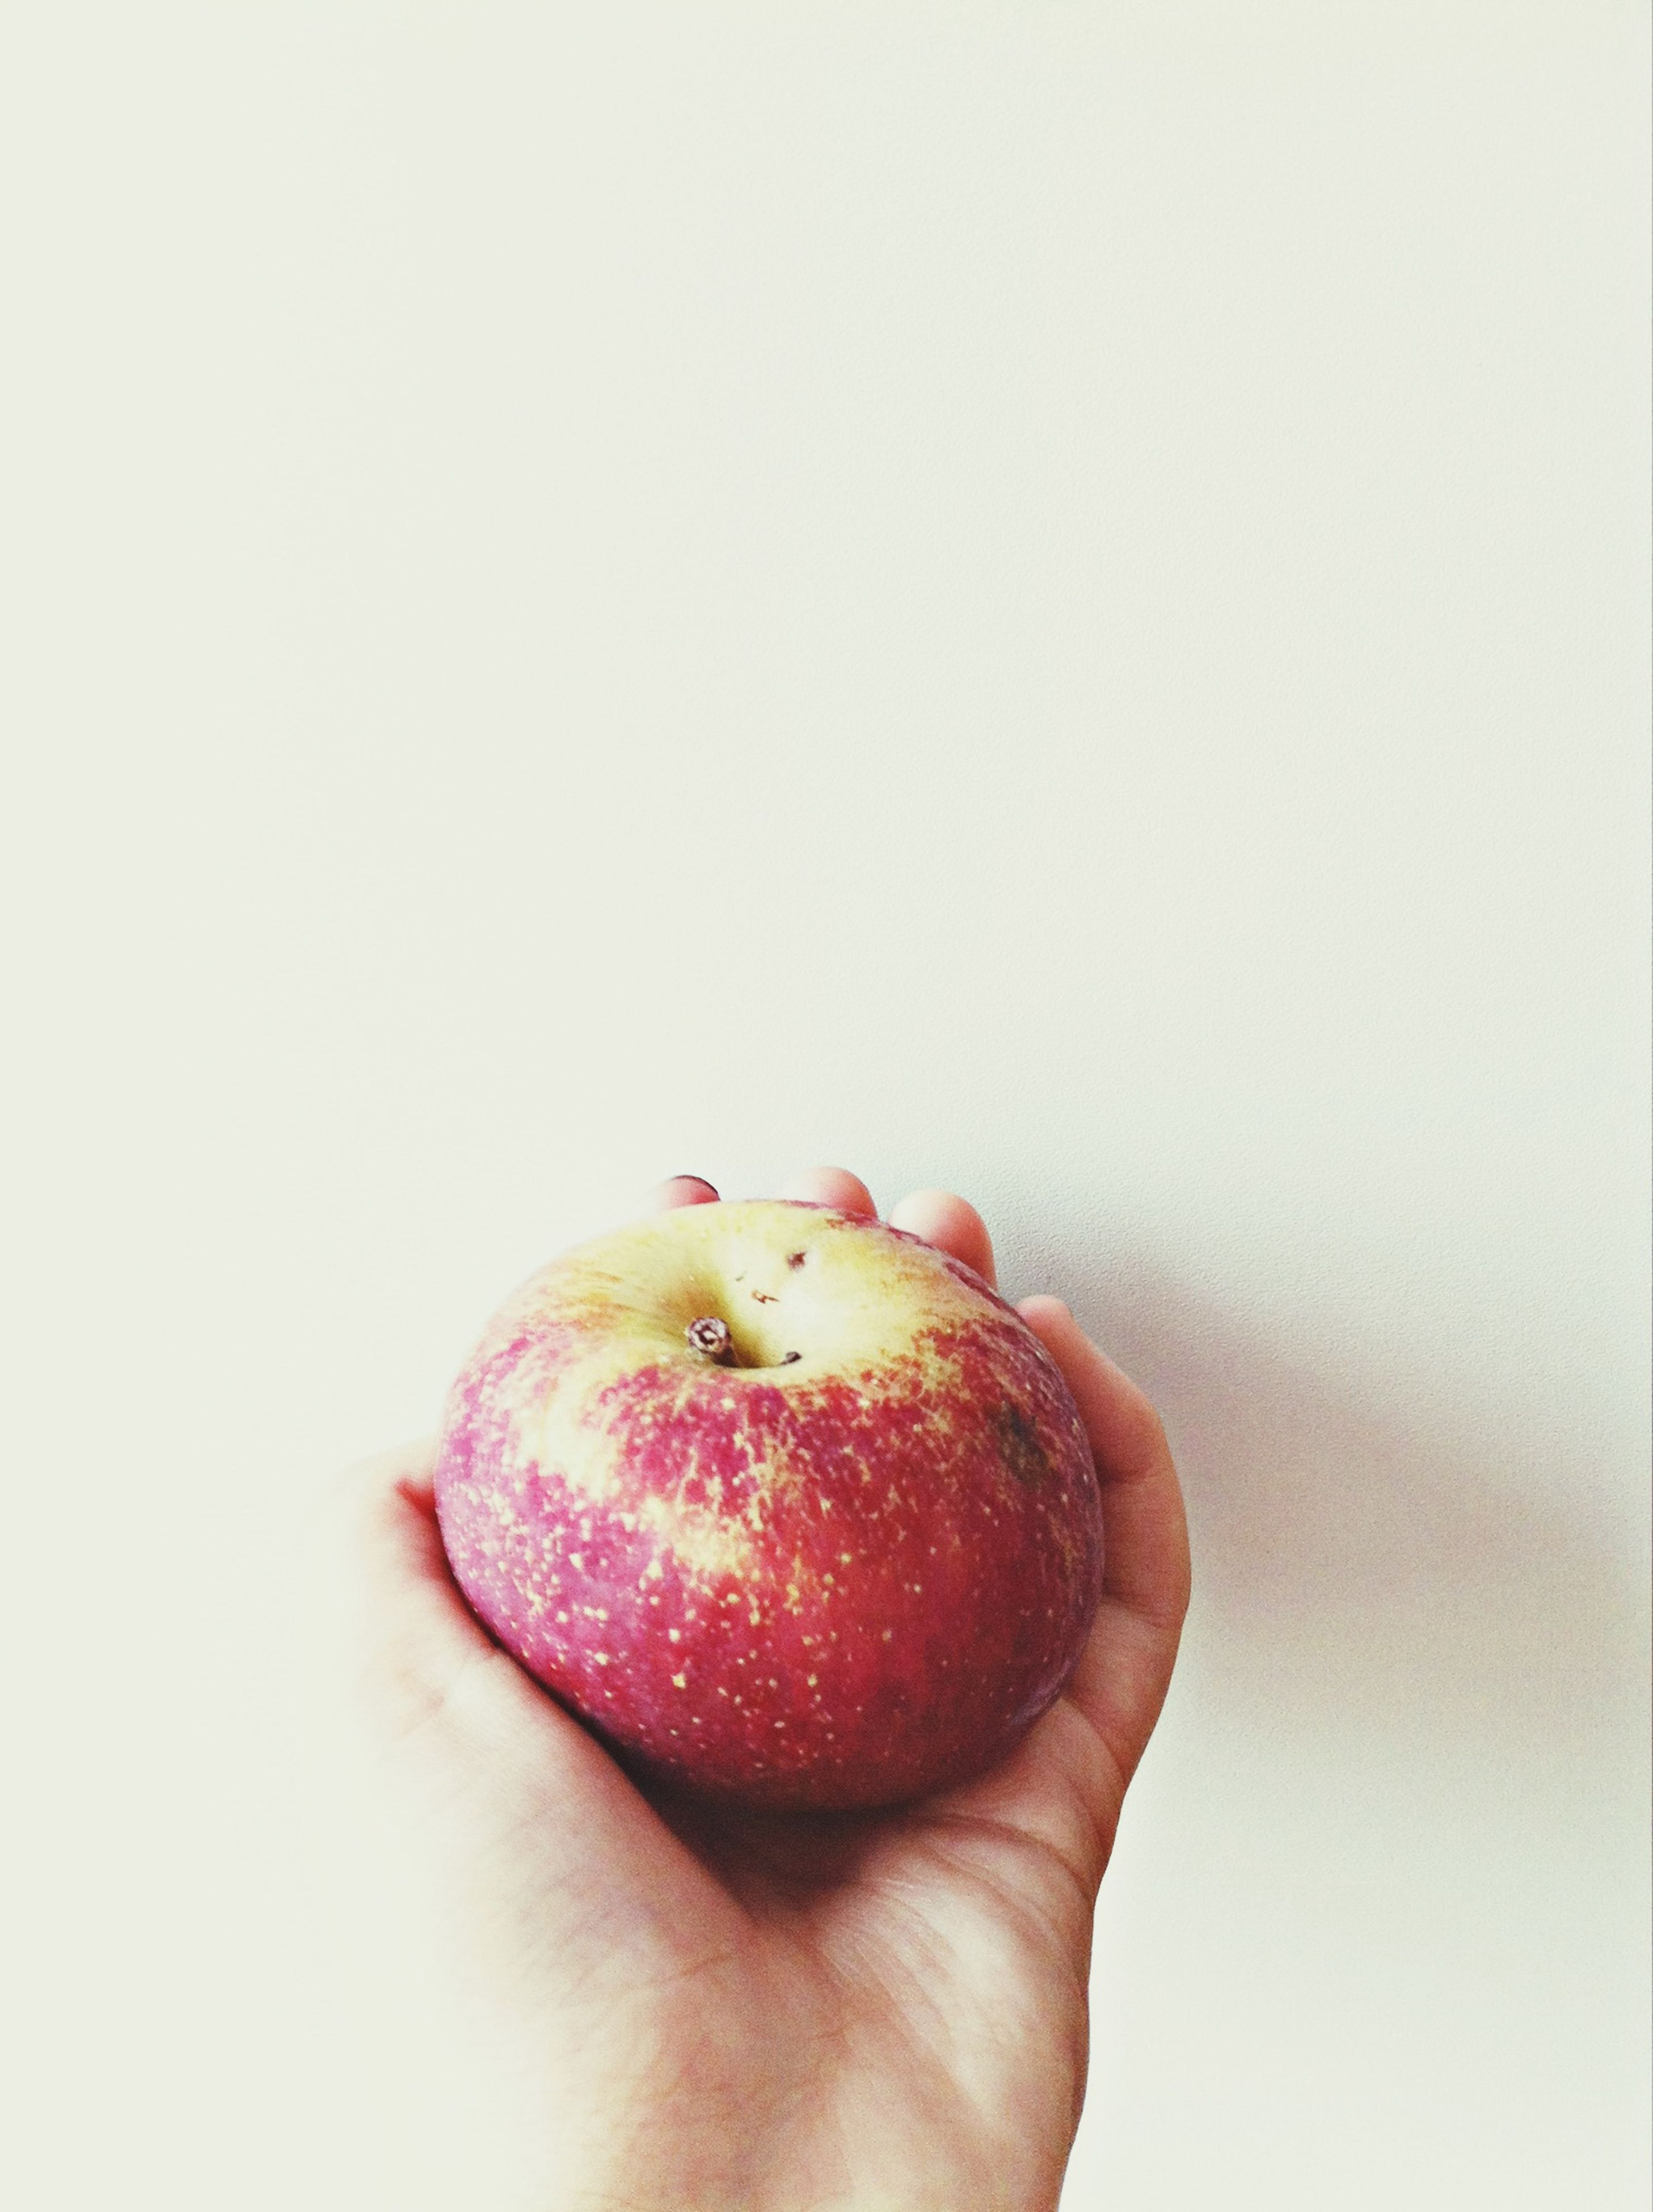 person, studio shot, white background, red, part of, close-up, copy space, cropped, food and drink, fruit, holding, food, human finger, indoors, healthy eating, unrecognizable person, single object